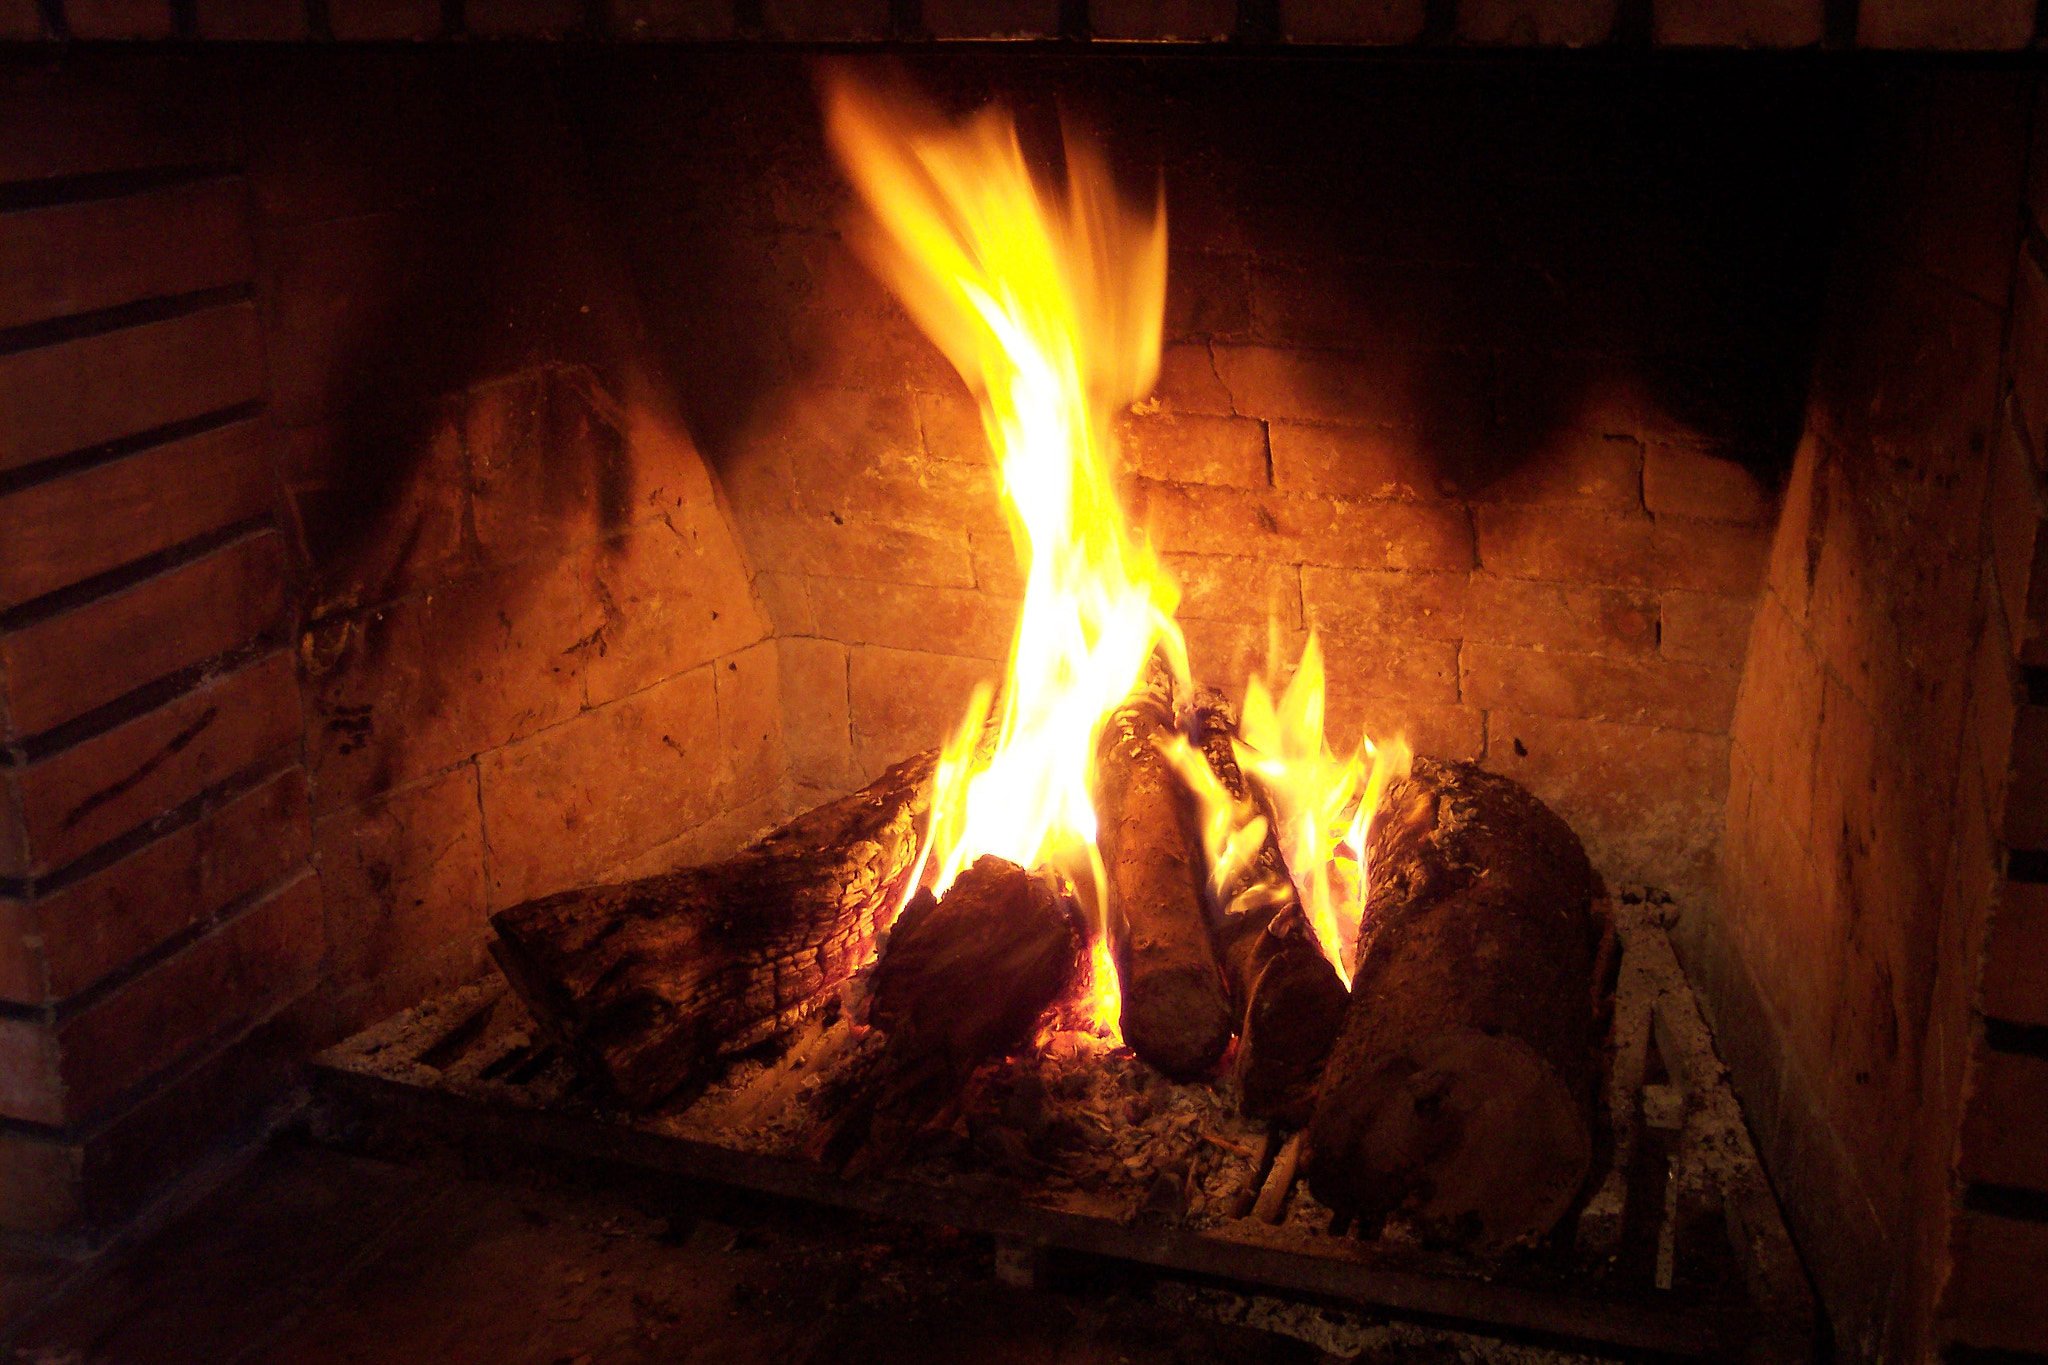 Photograph Fireplace by Elie Ghobeira on 500px